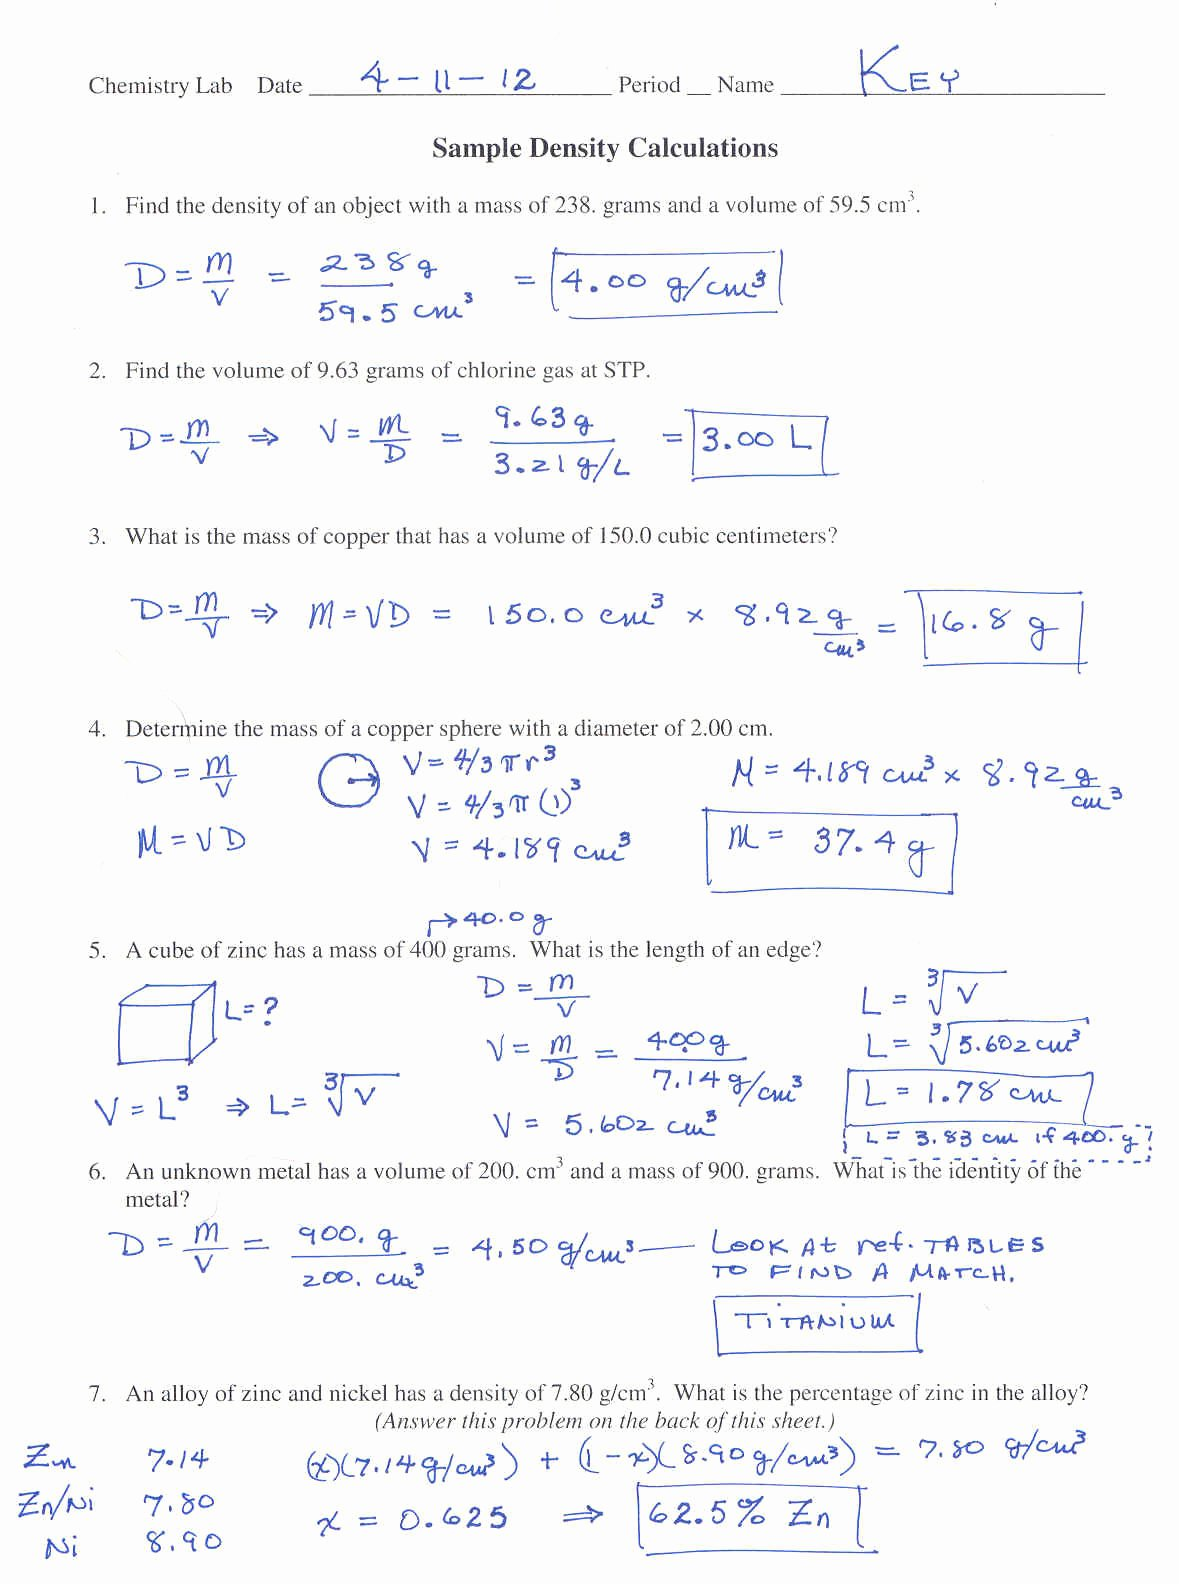 Worksheet Mole Problems Answers Awesome Mole Conversion Problems Worksheets with Answers